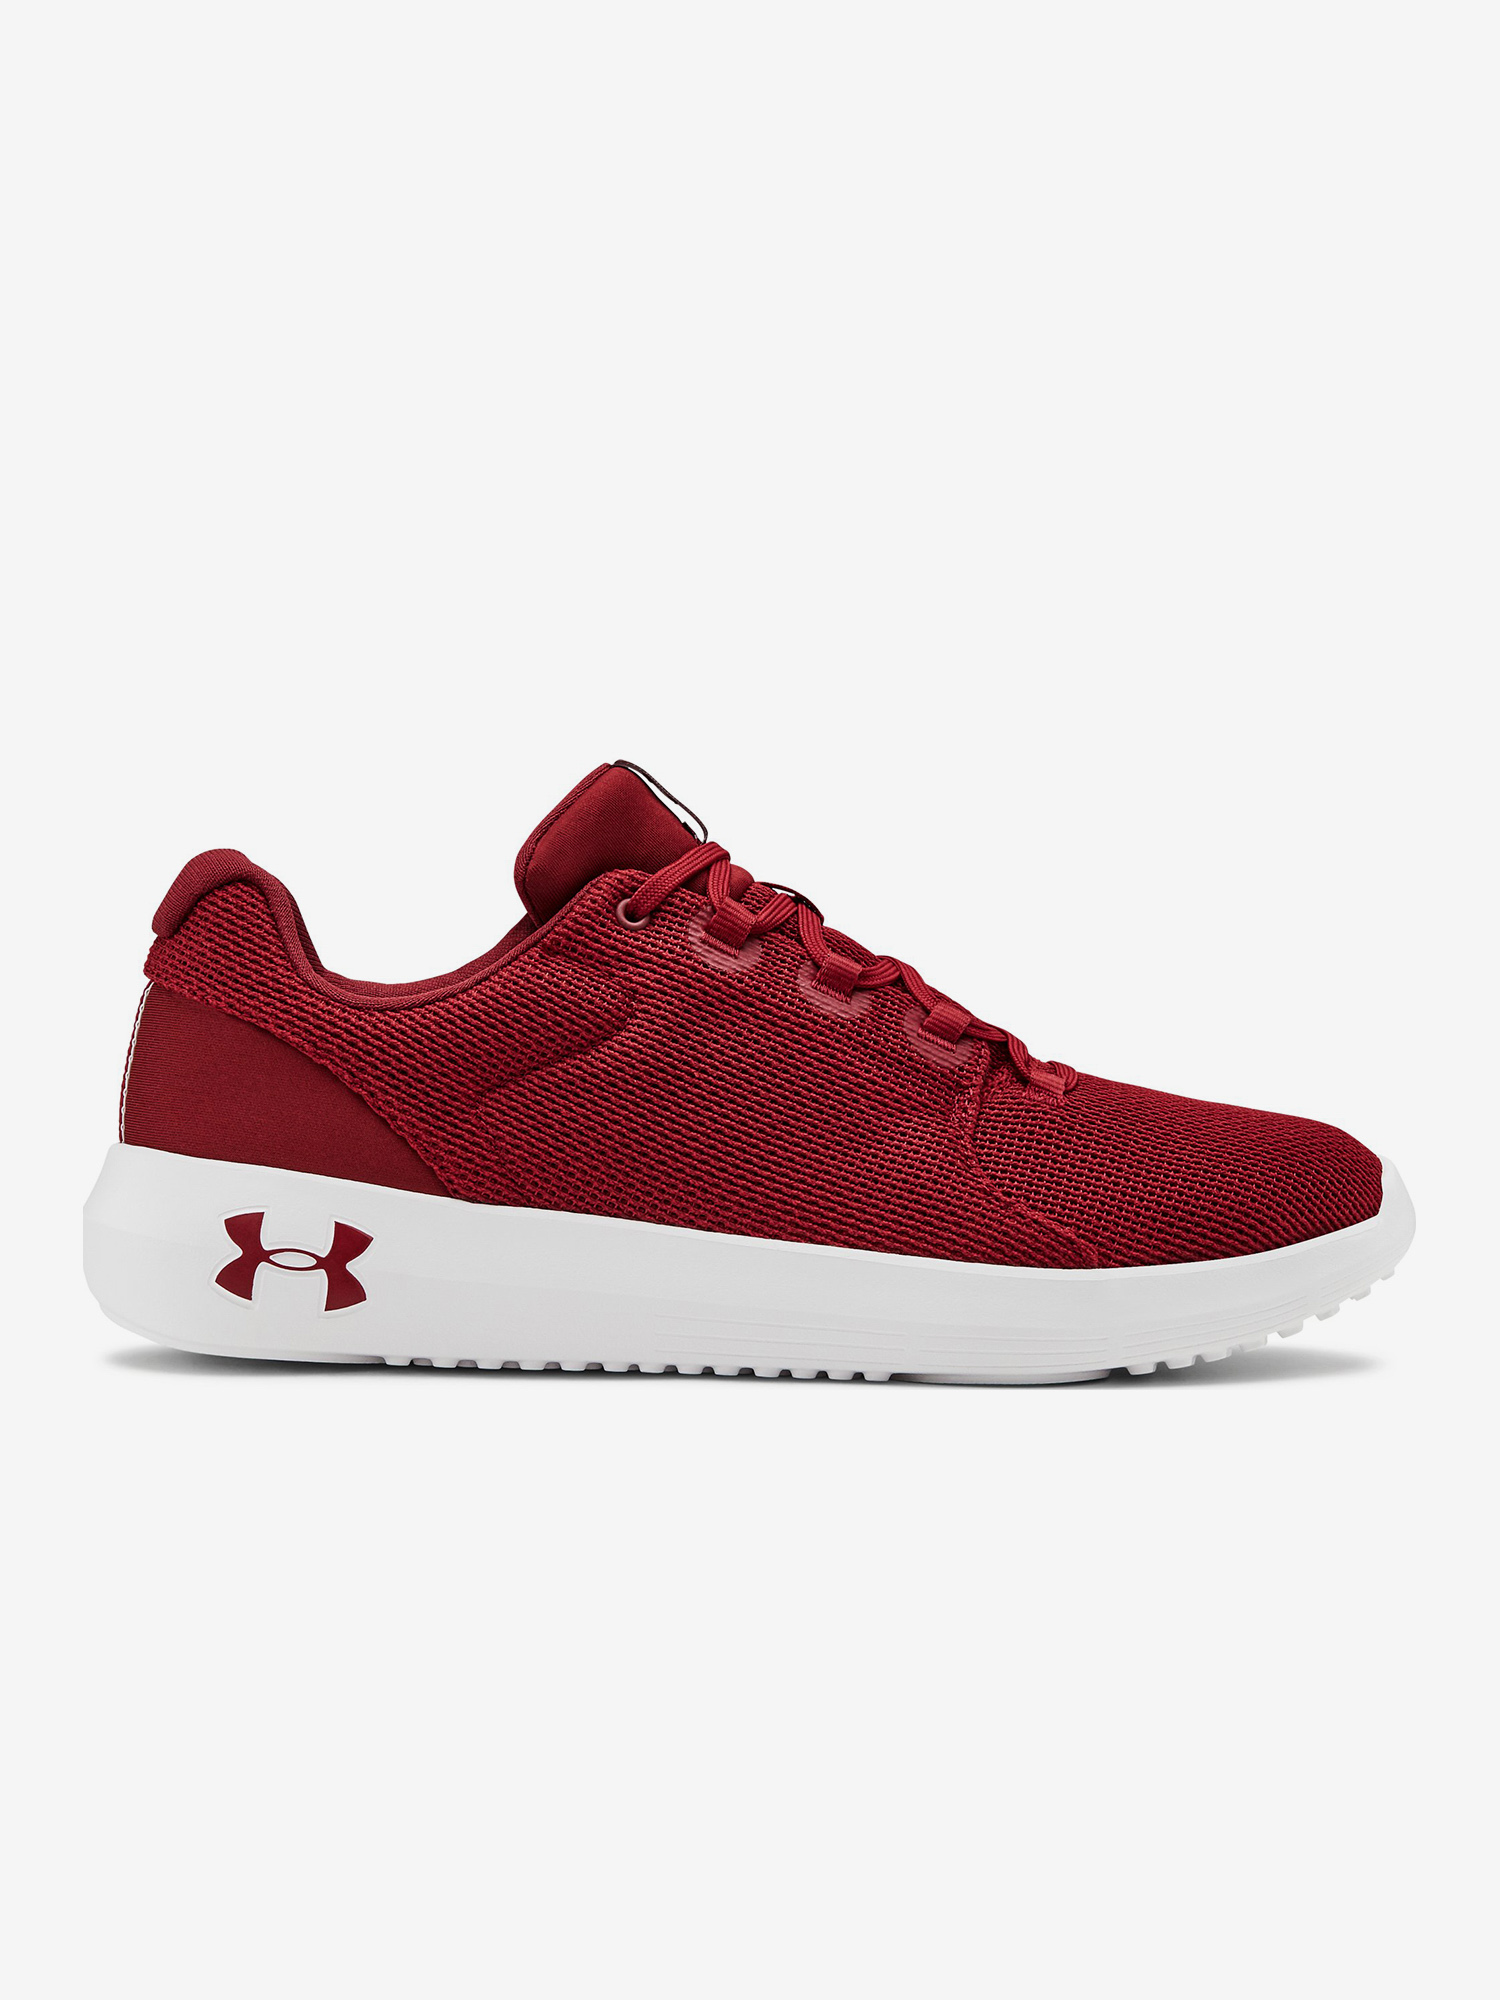 Boty Under Armour Ripple 2.0-Red